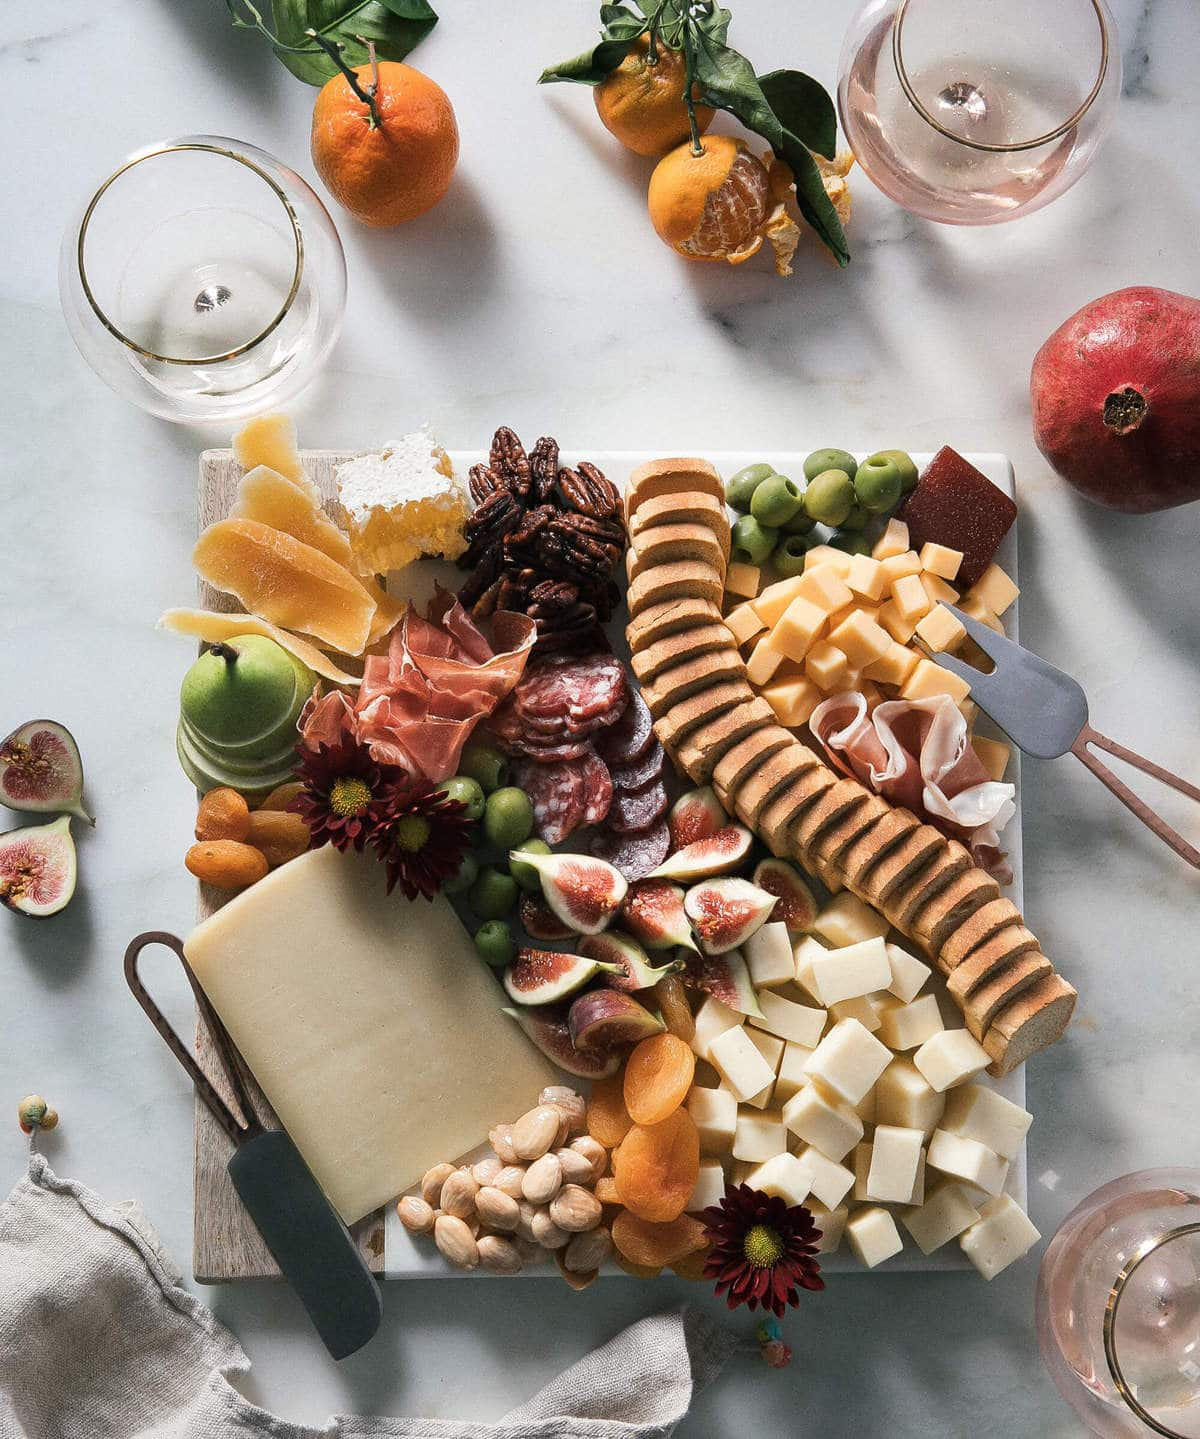 How to Build a Fall/Winter Cheese Board